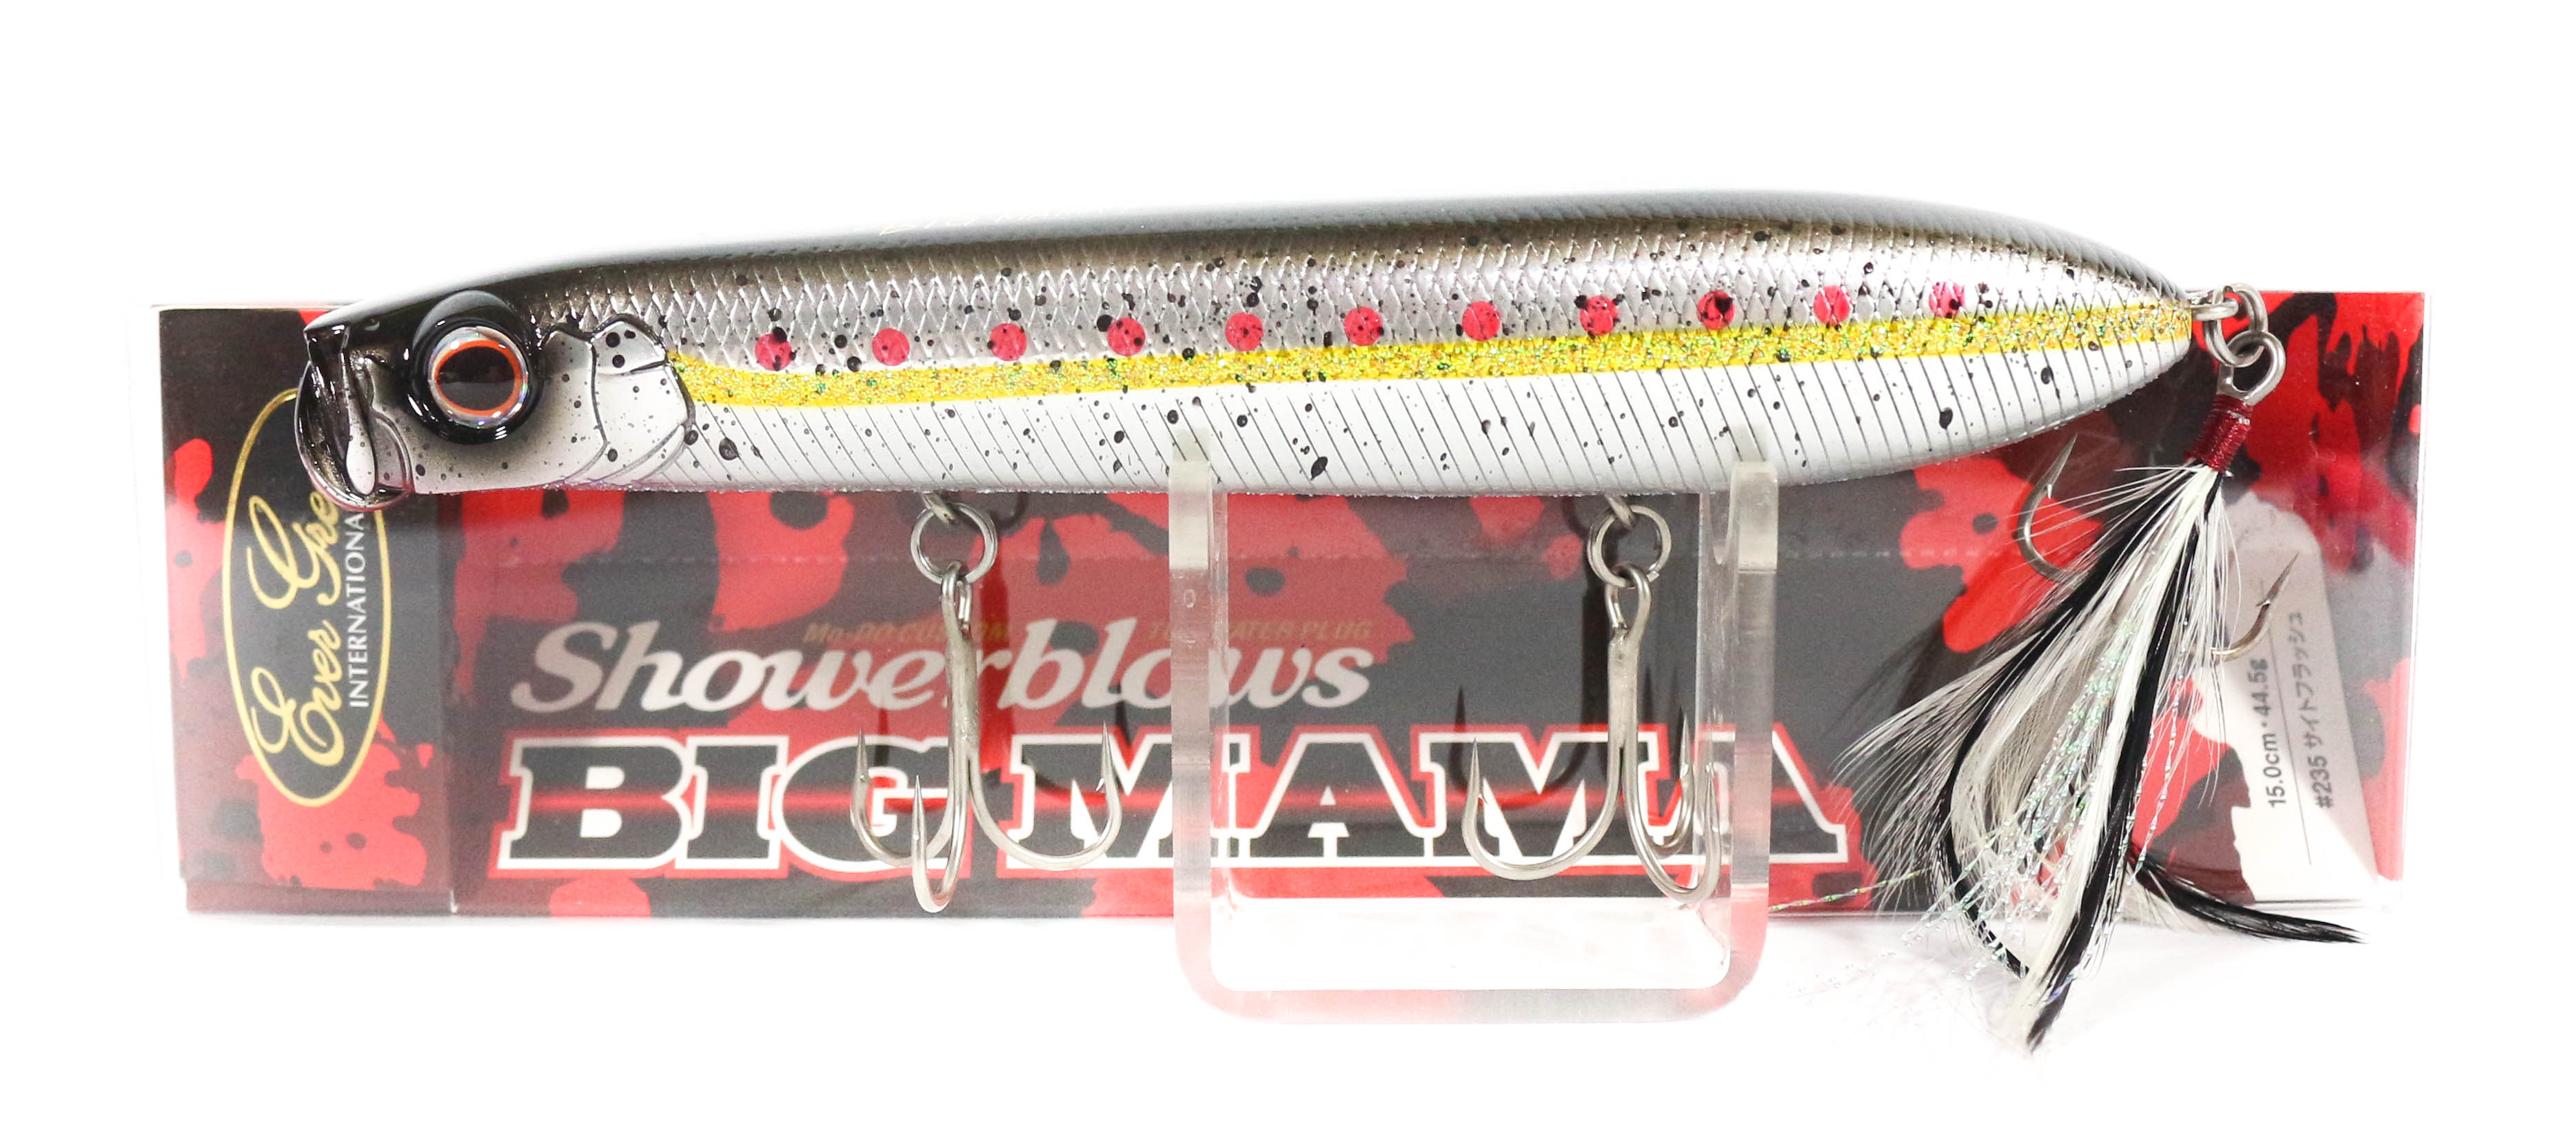 Evergreen Shower Blows Big Mama 150mm Pencil Floating Lure 358 (4397)